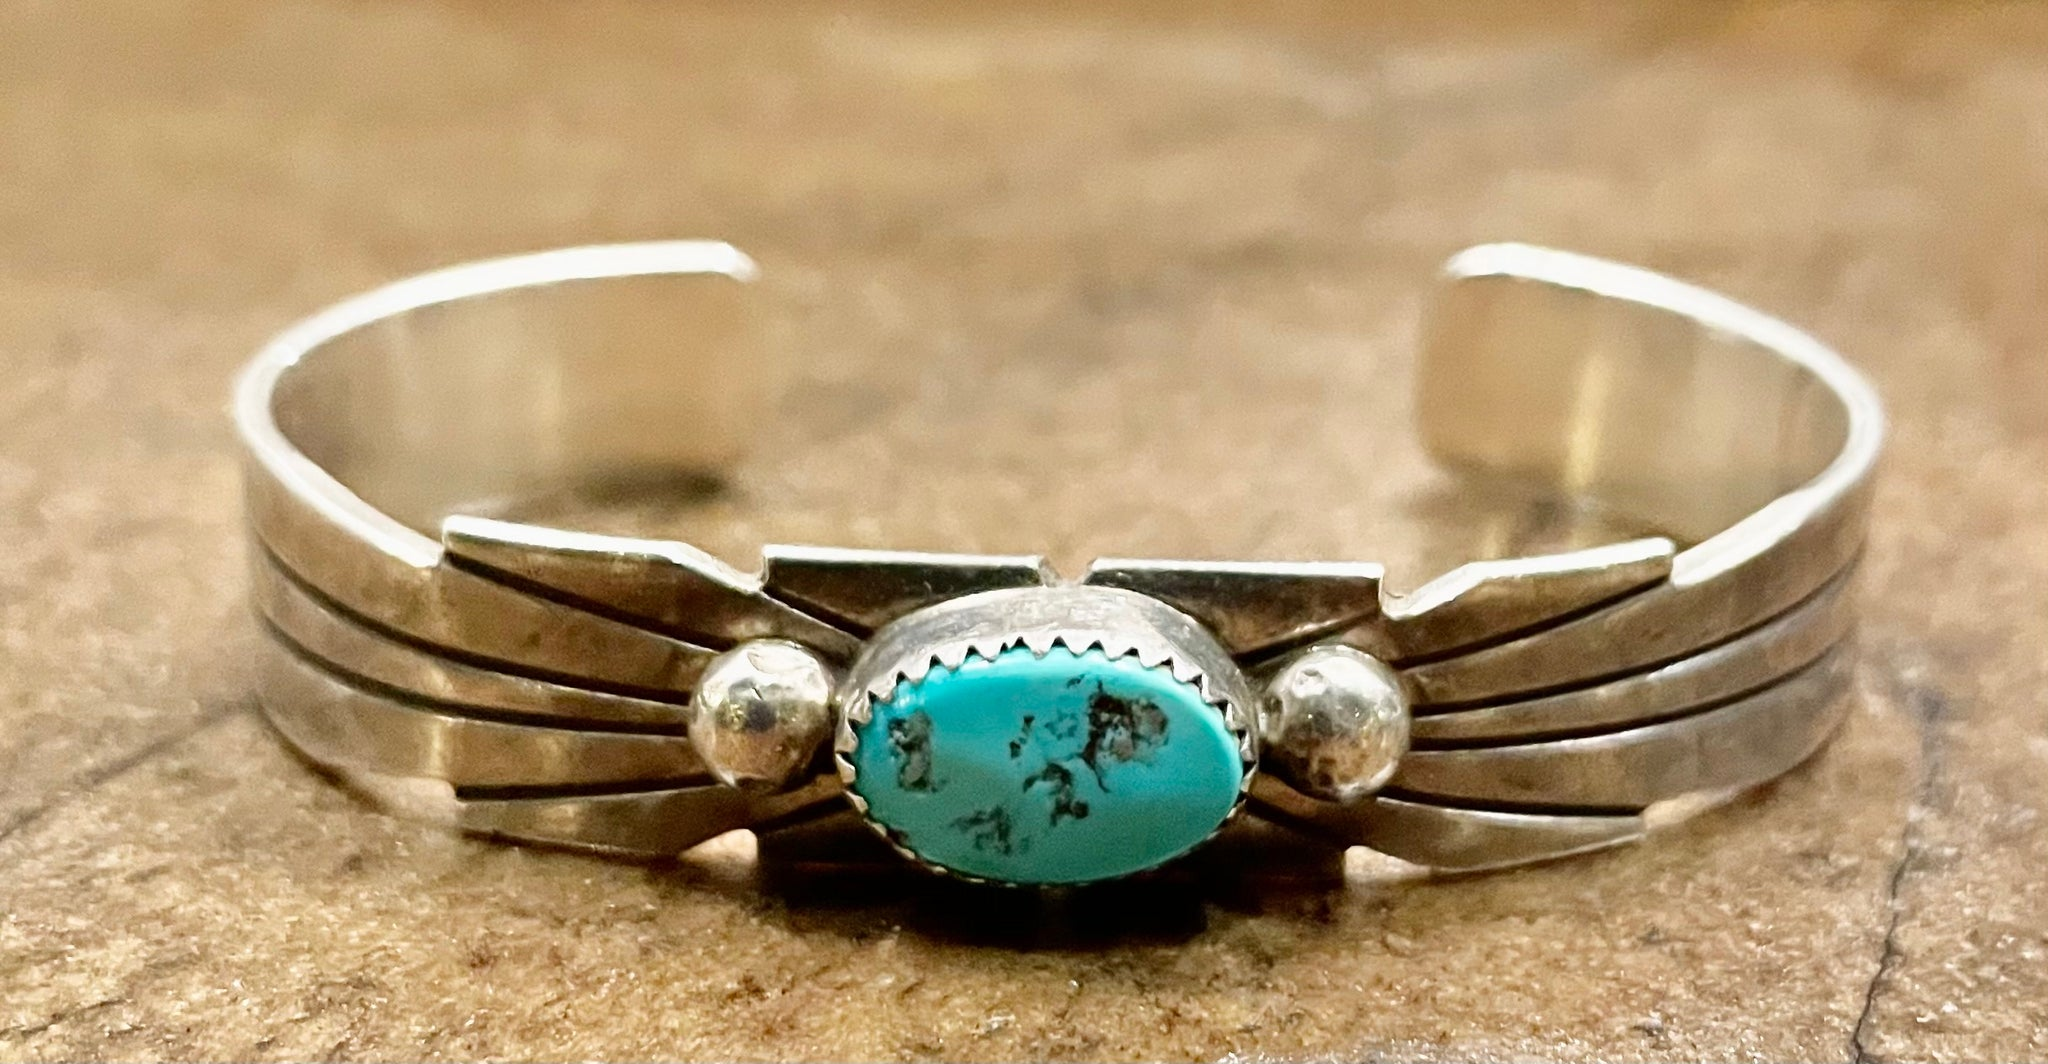 Silver Cuff with Oval Turquoise